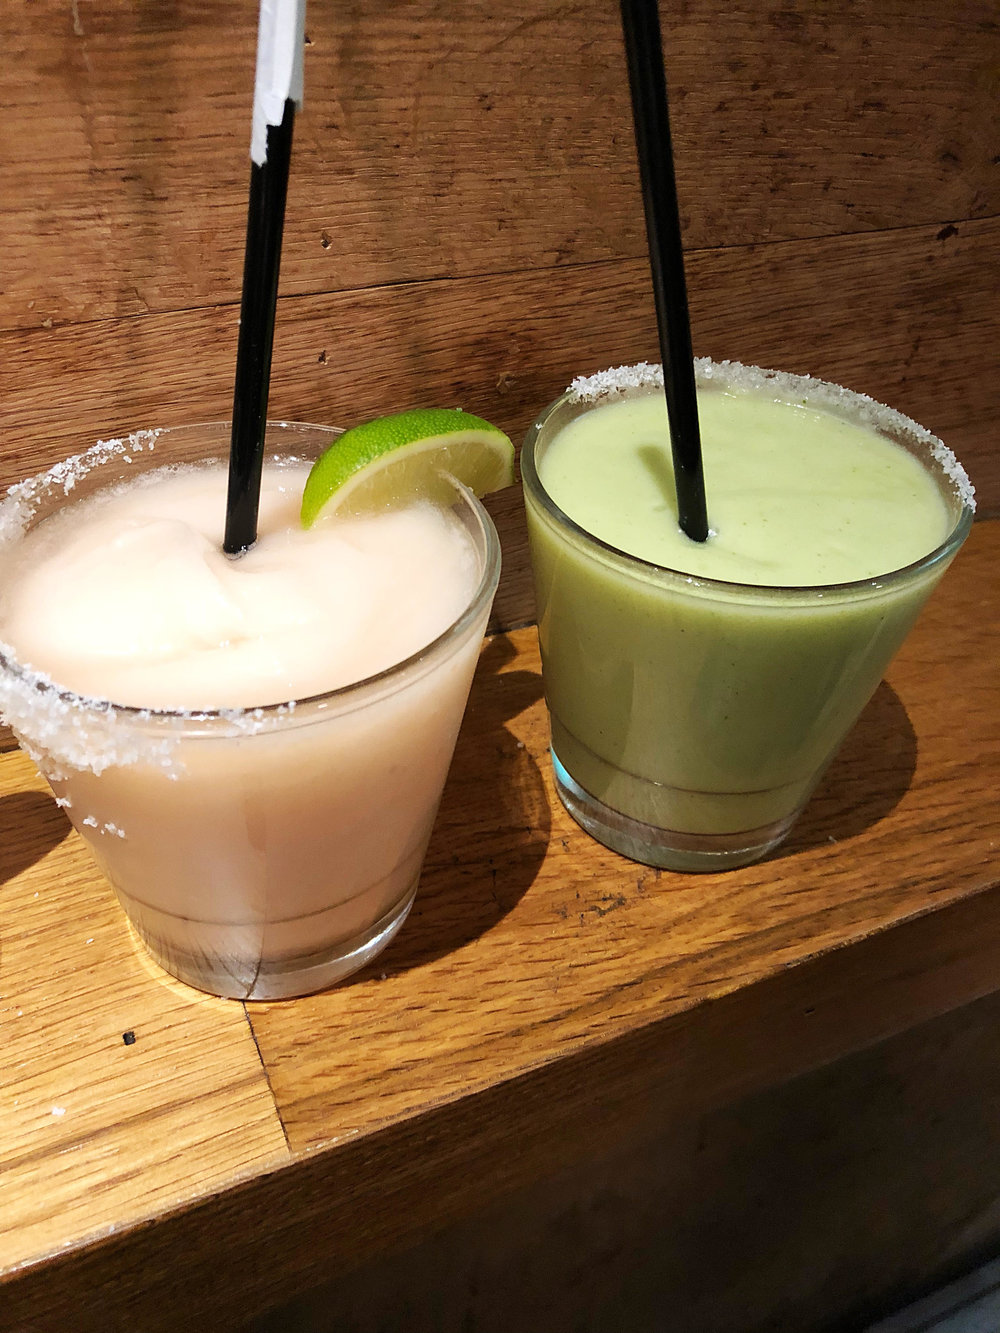 Habanero peach and avocado margaritas